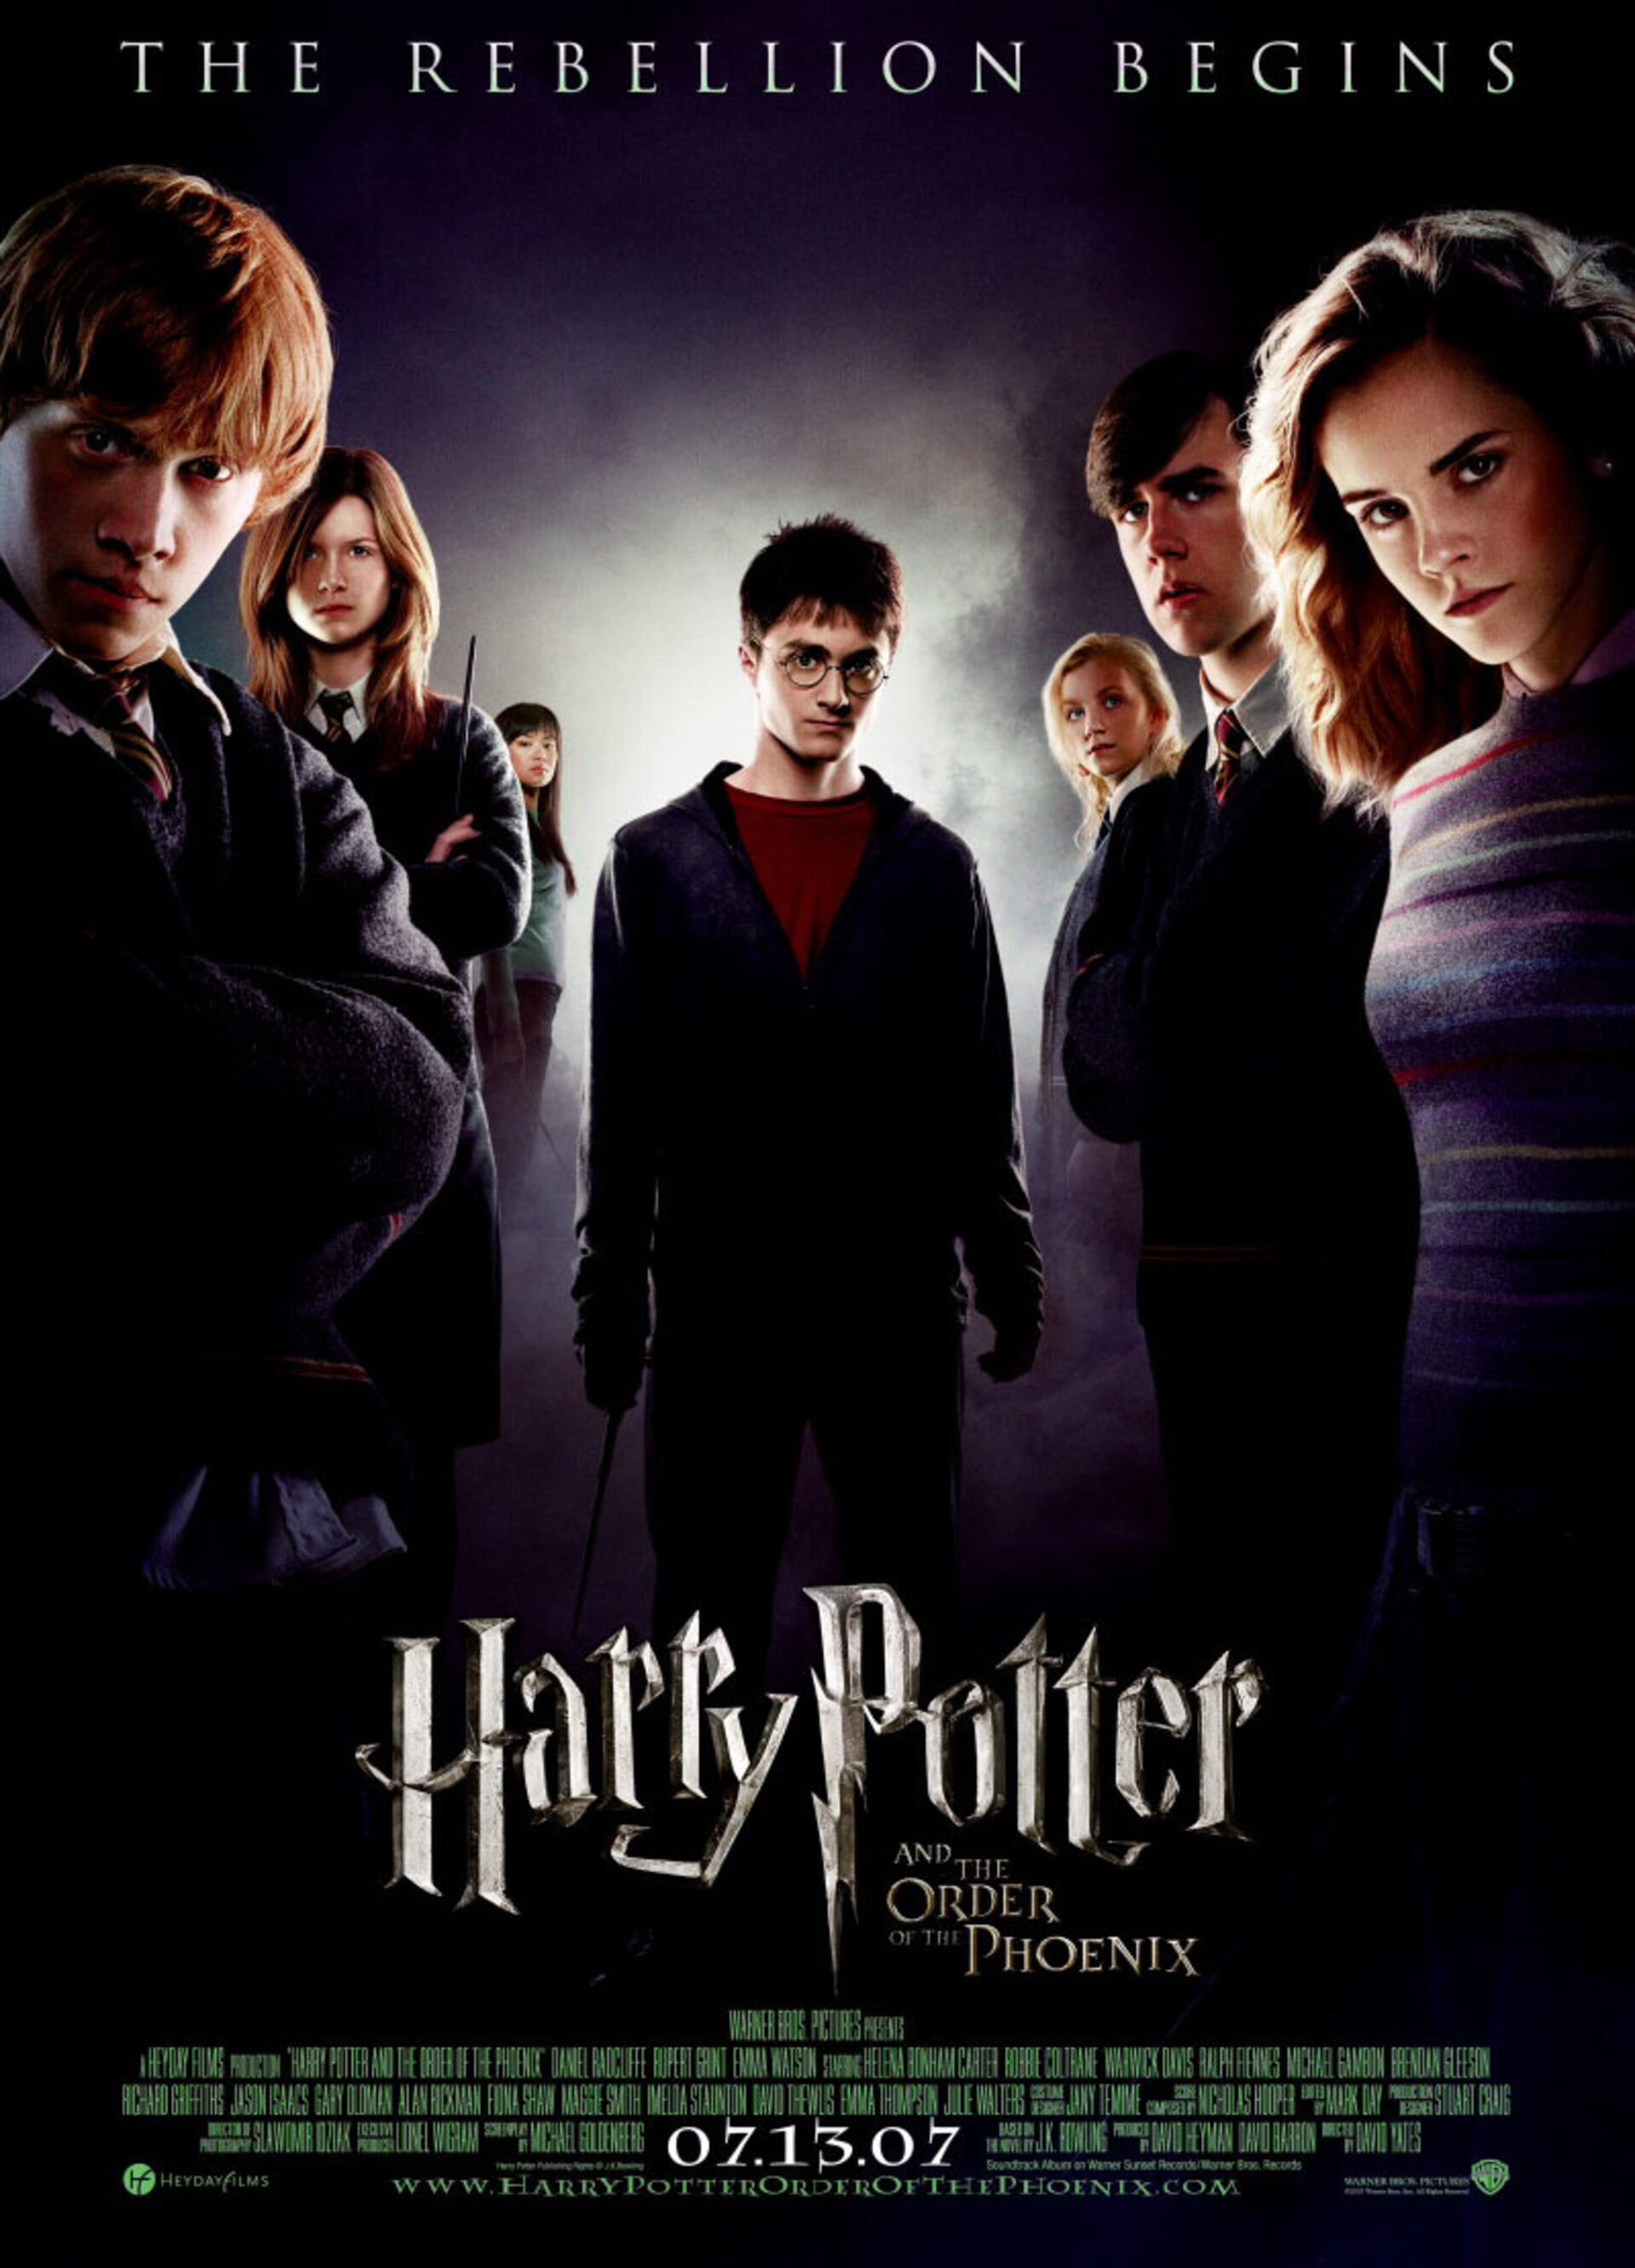 Harry Potter and the Order of the Phoenix - Poster 1